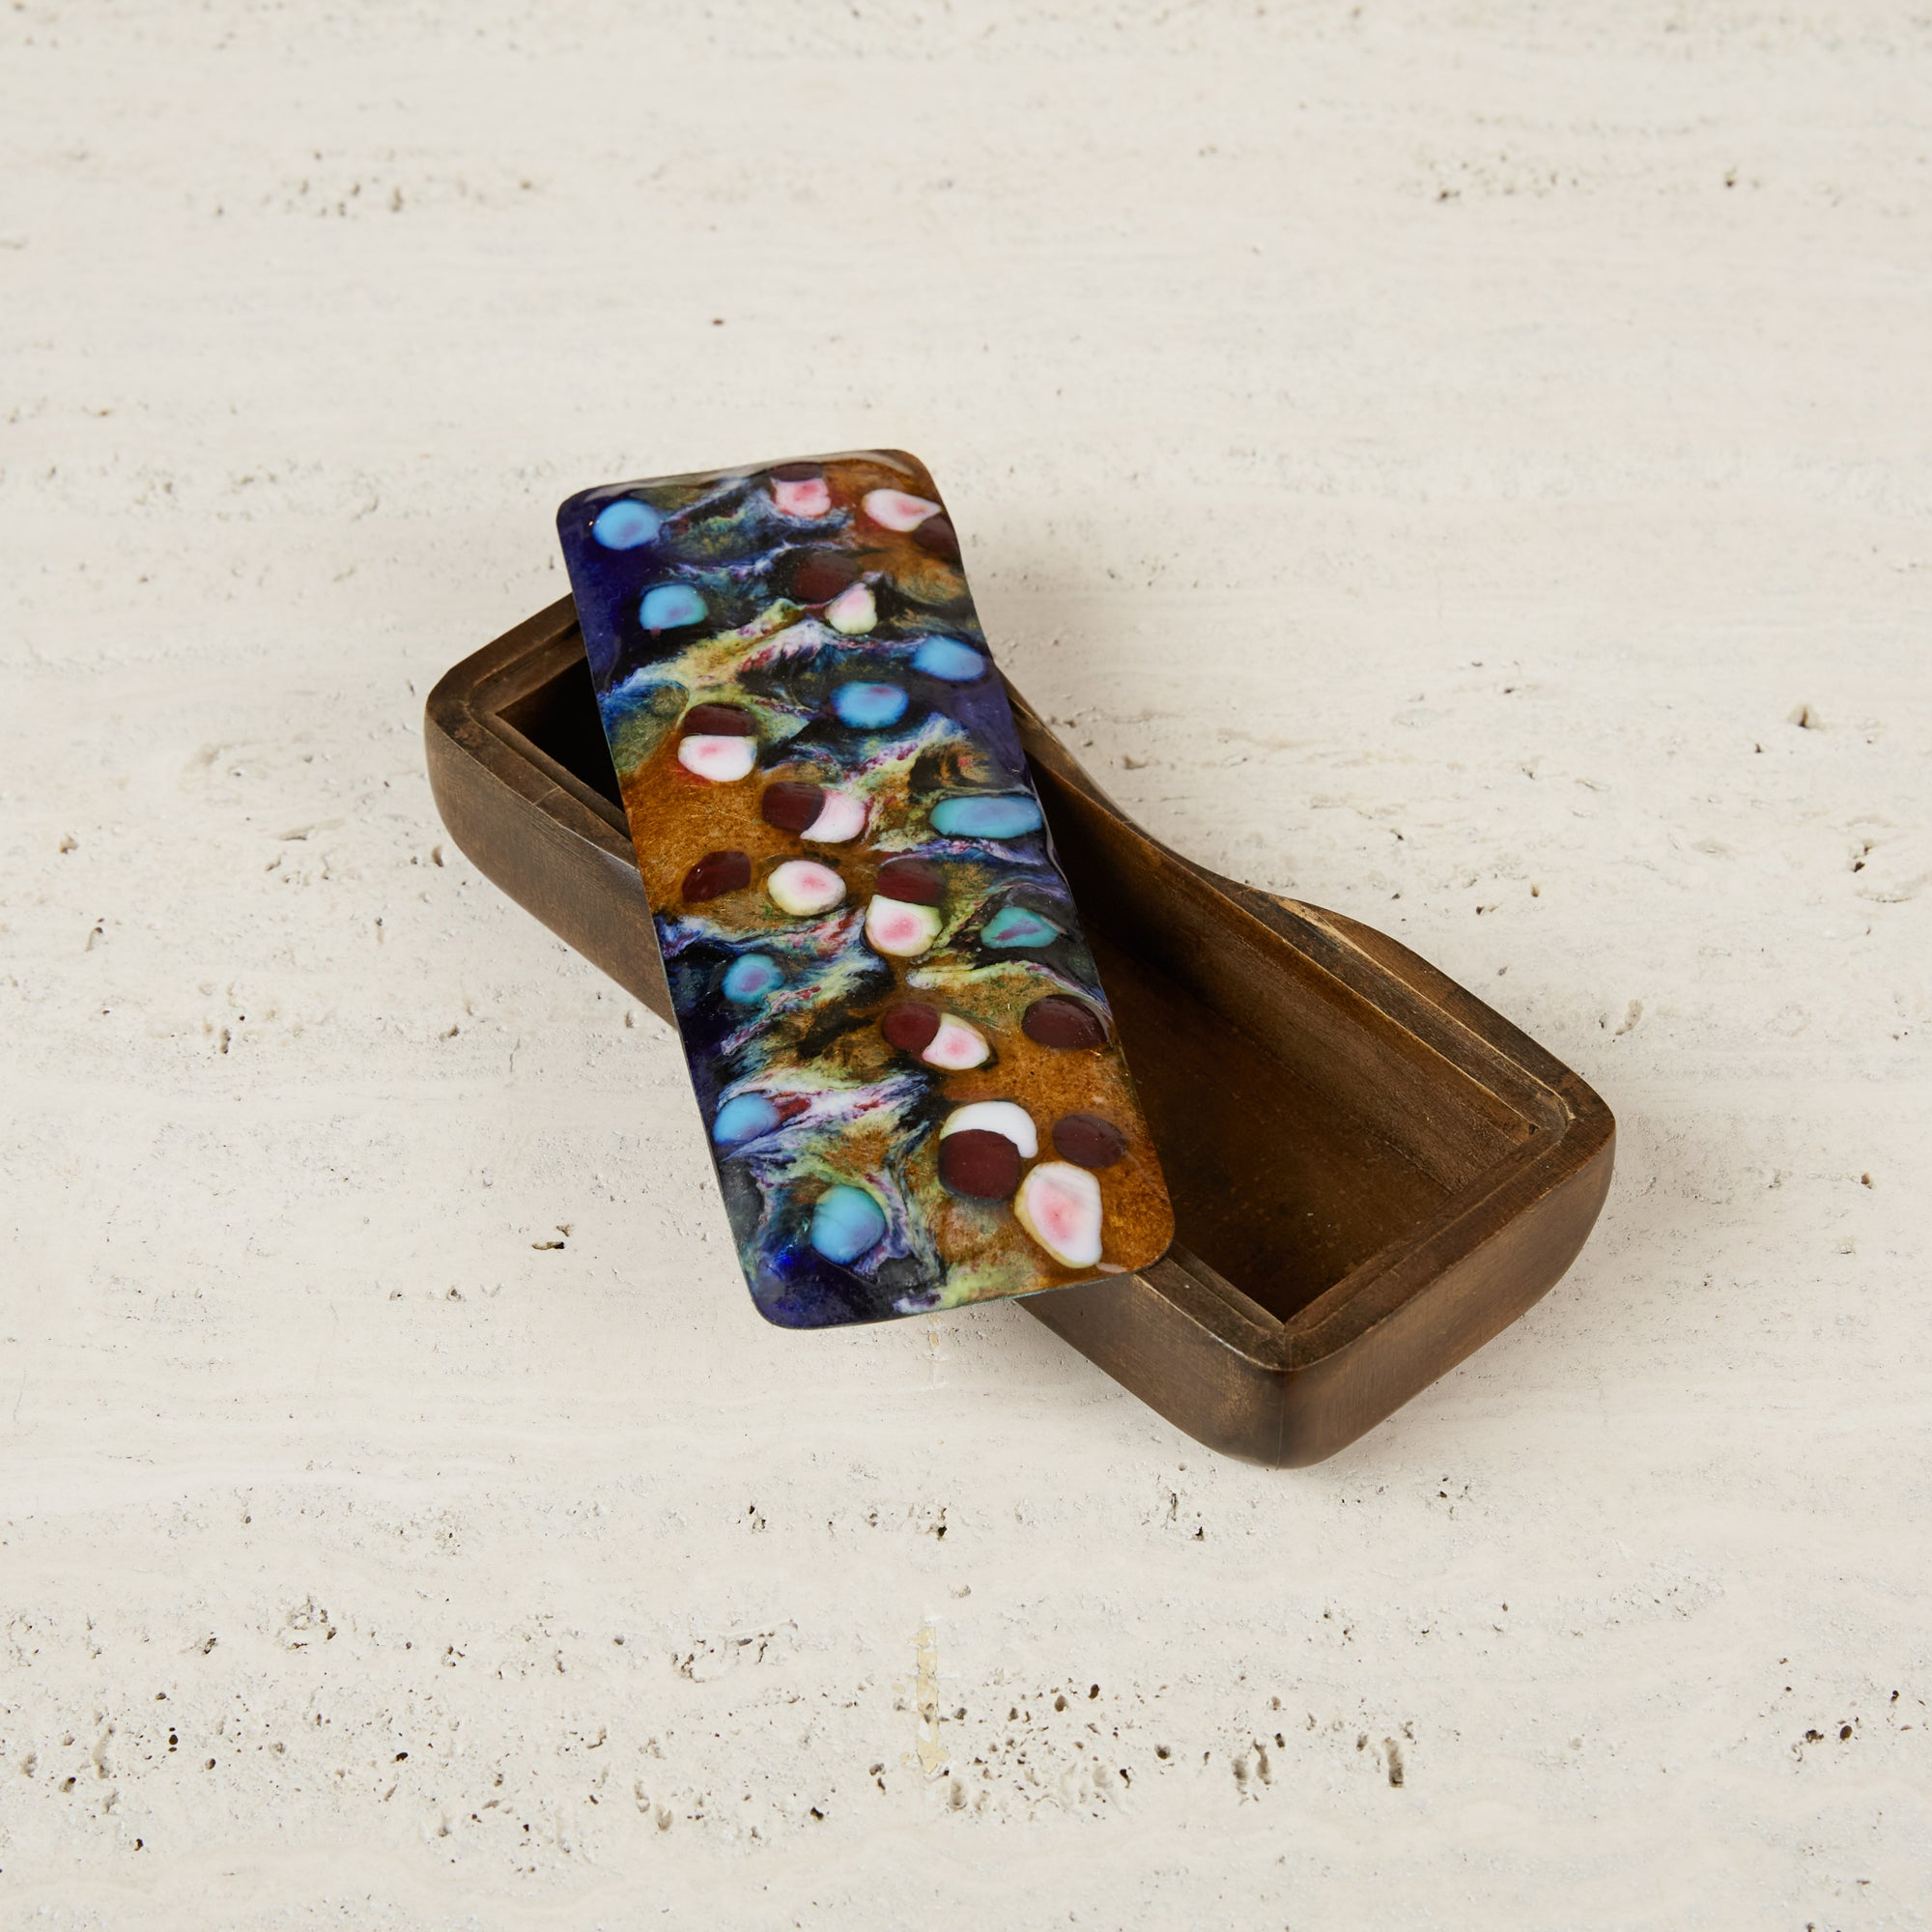 Sculpted Studio Craft Wooden Box with Multicolored Tin Top by J. Capo